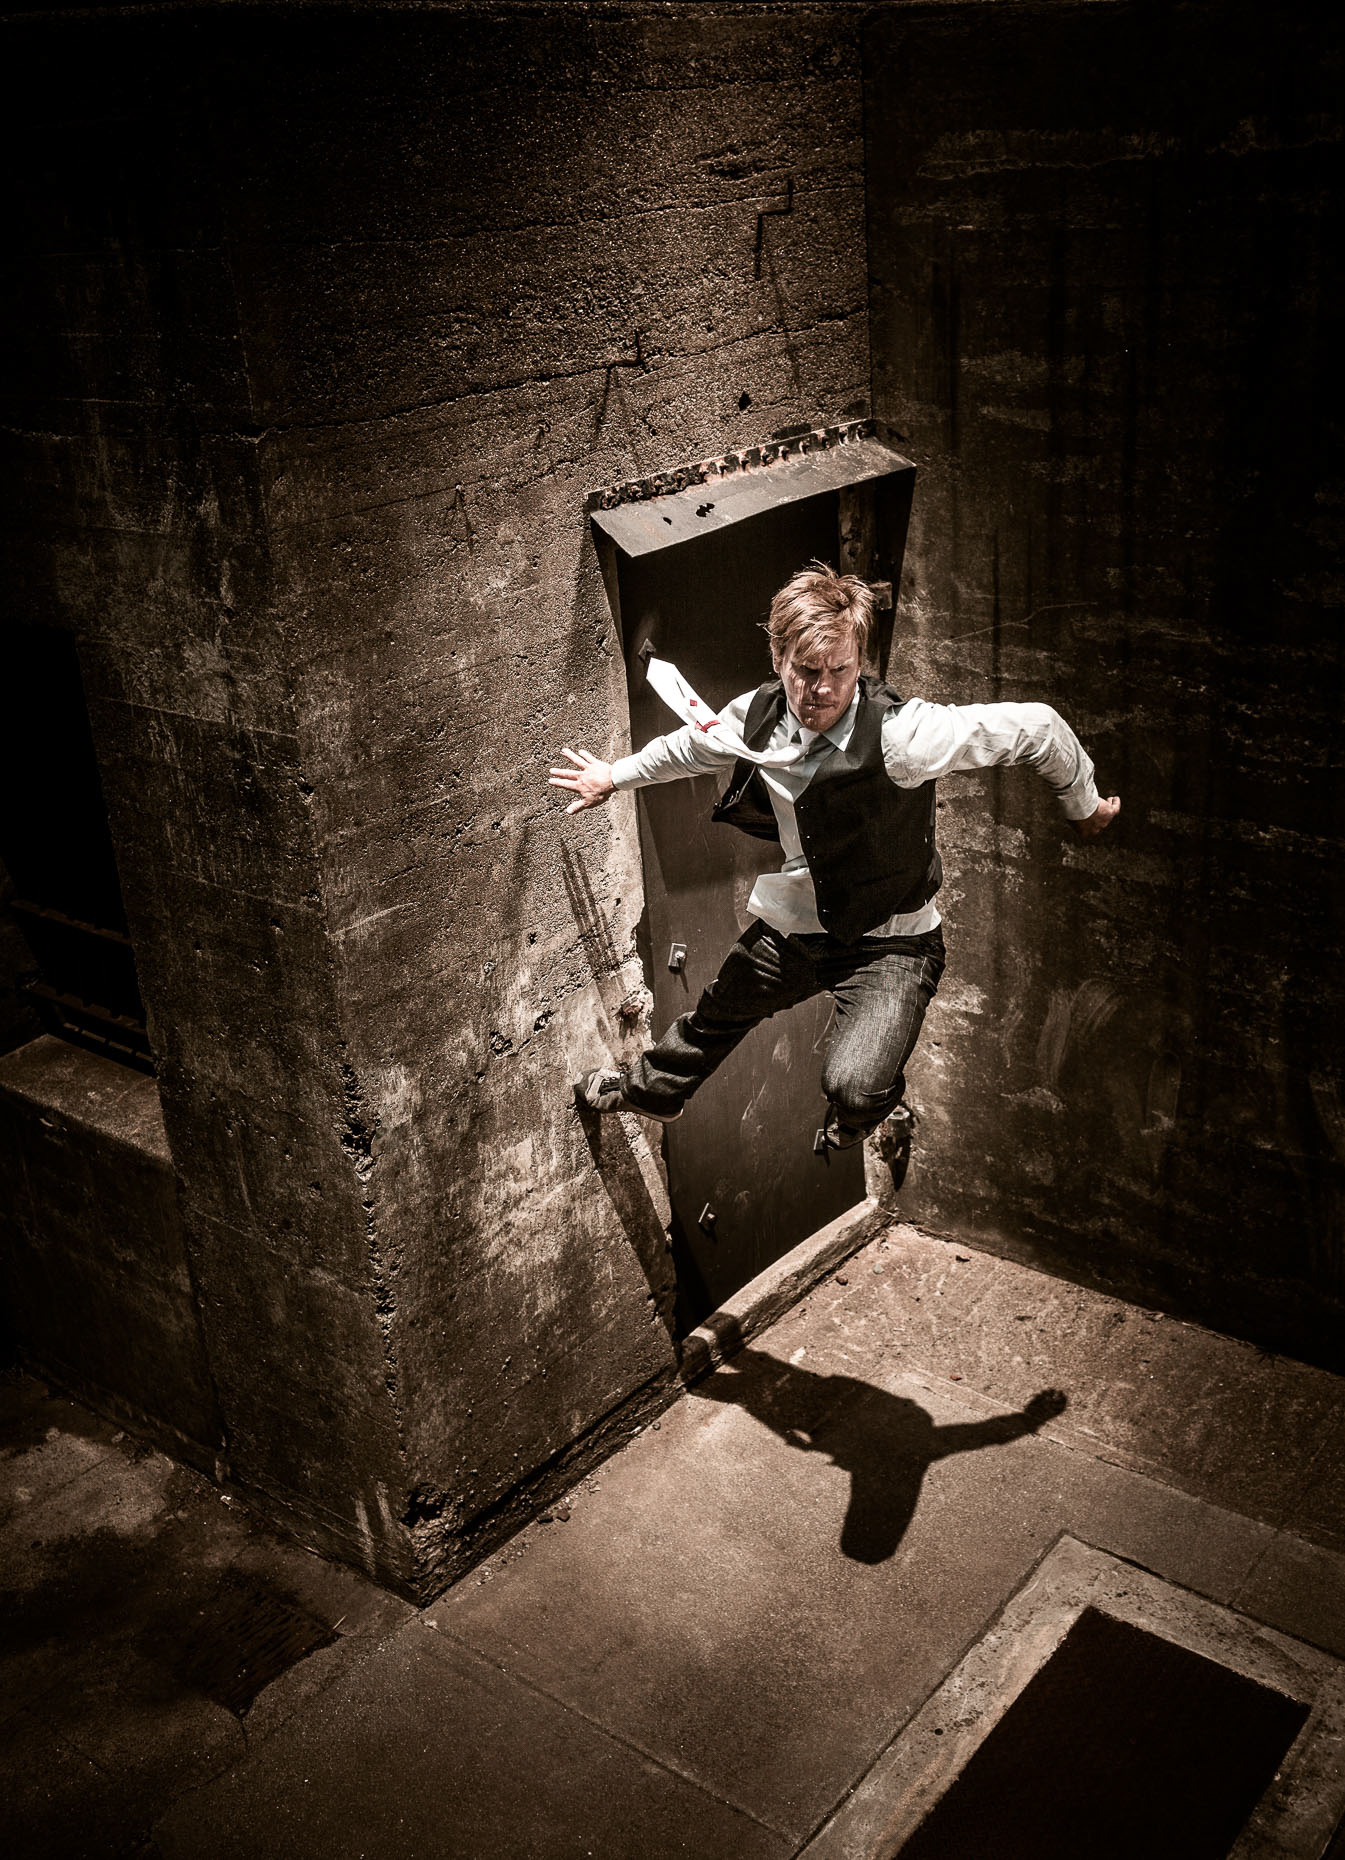 parkour freerunner athlete brian orosco jumps off wall at the Presidio army bunkers by andy batt